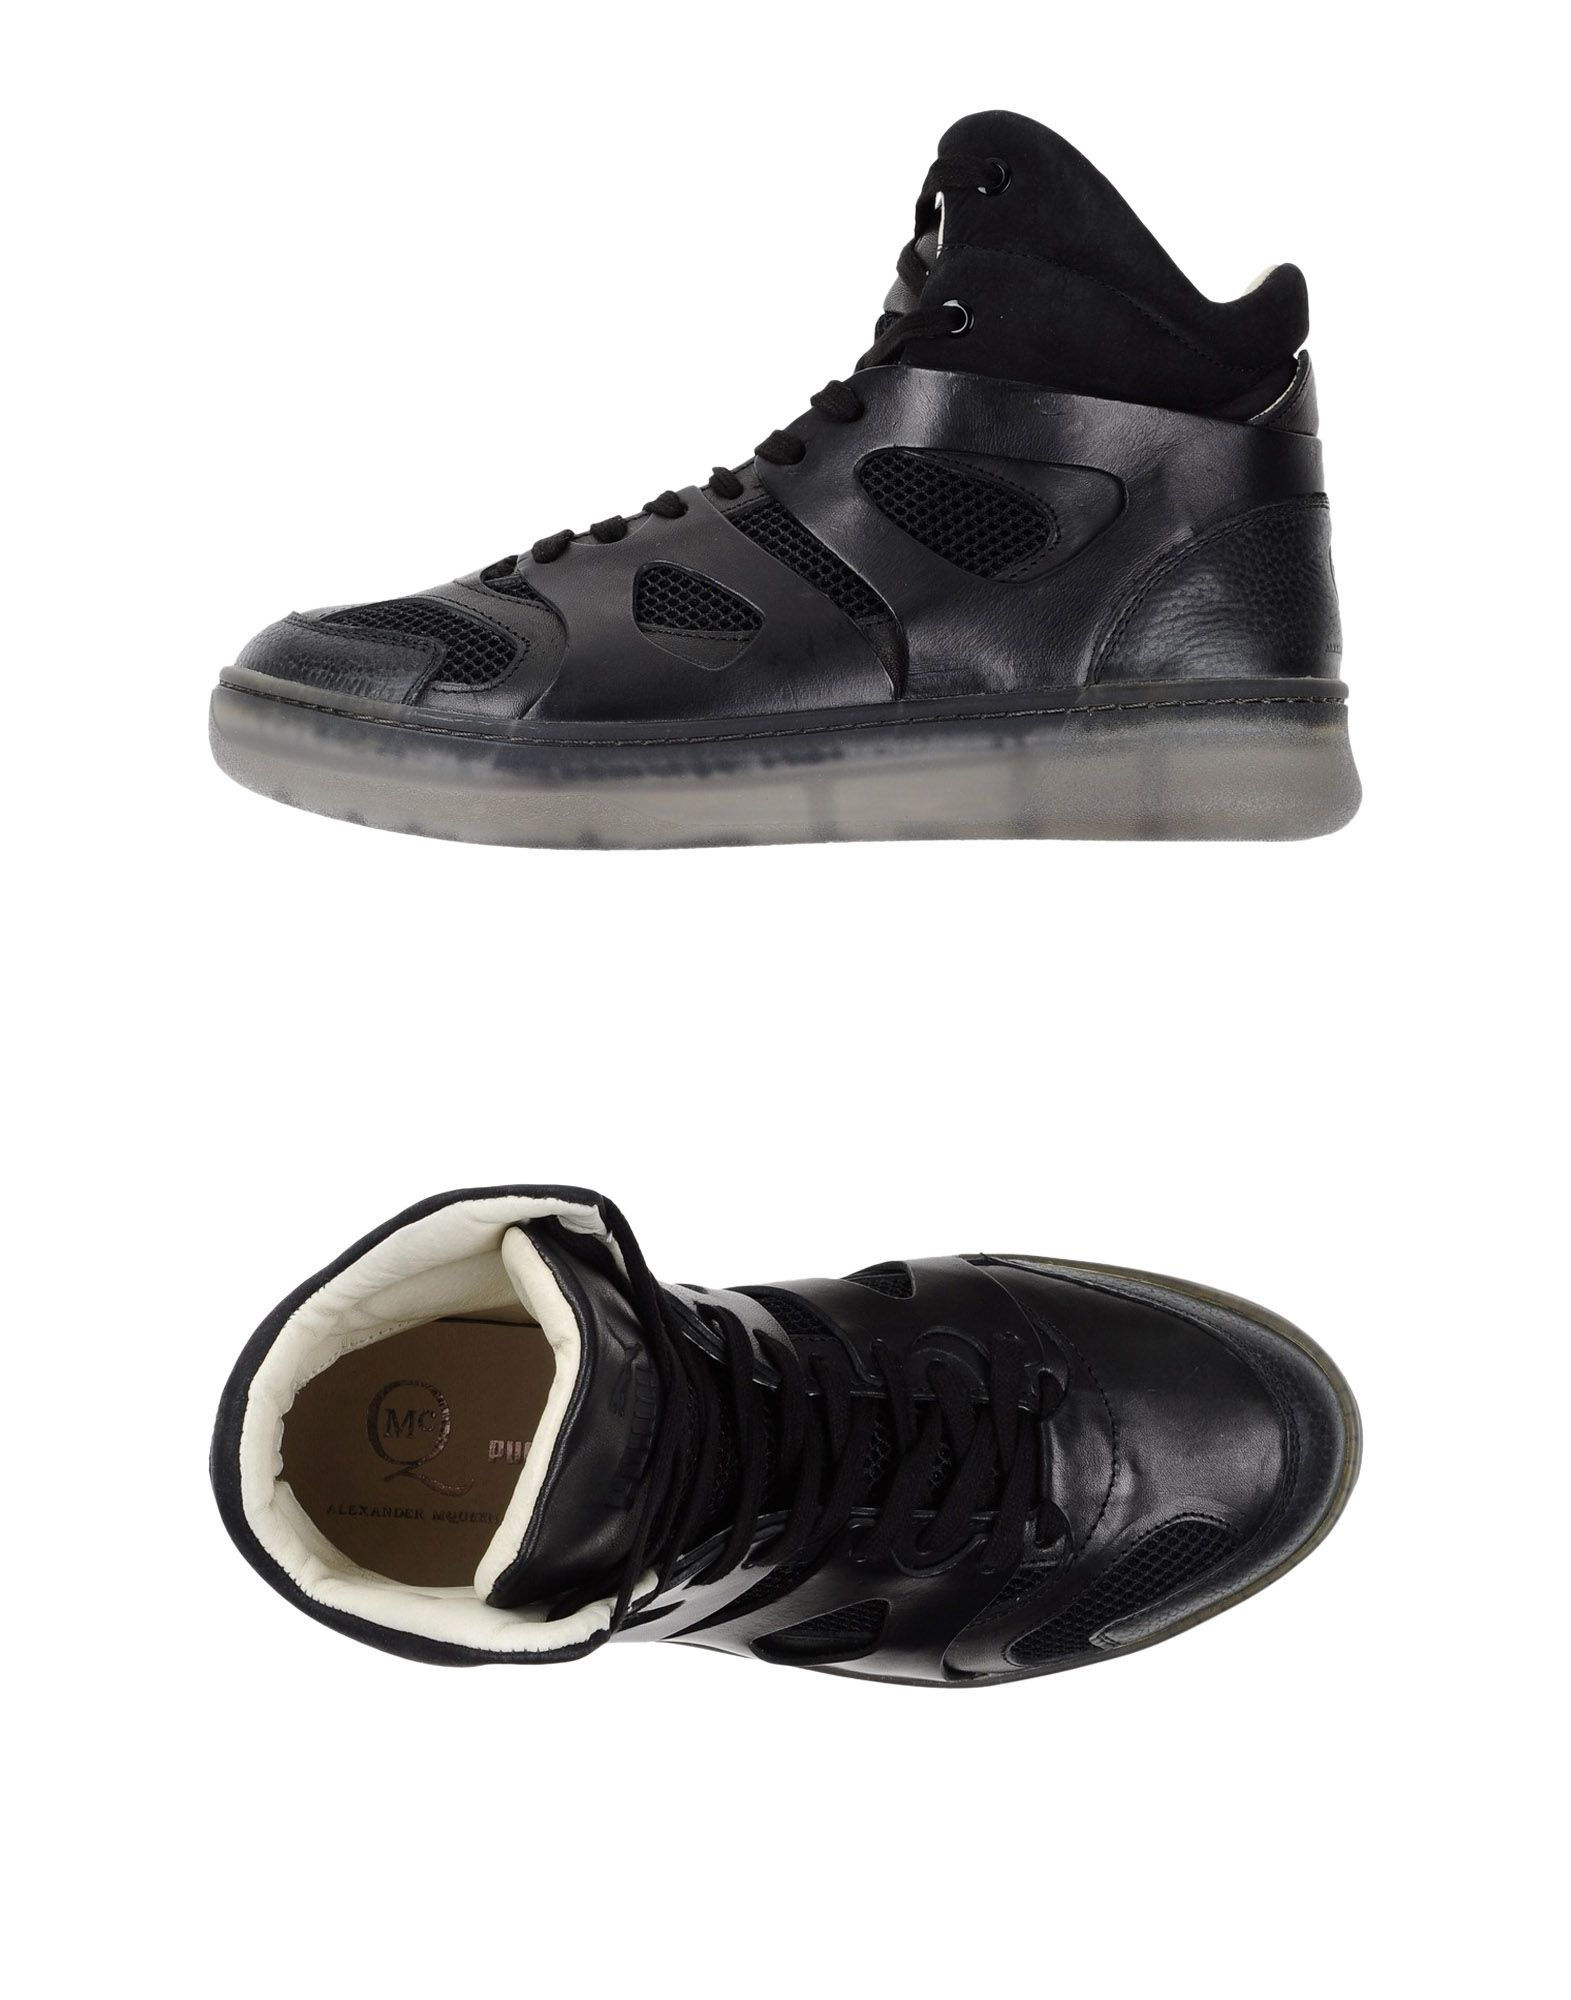 lyst alexander mcqueen x puma move leather hightop